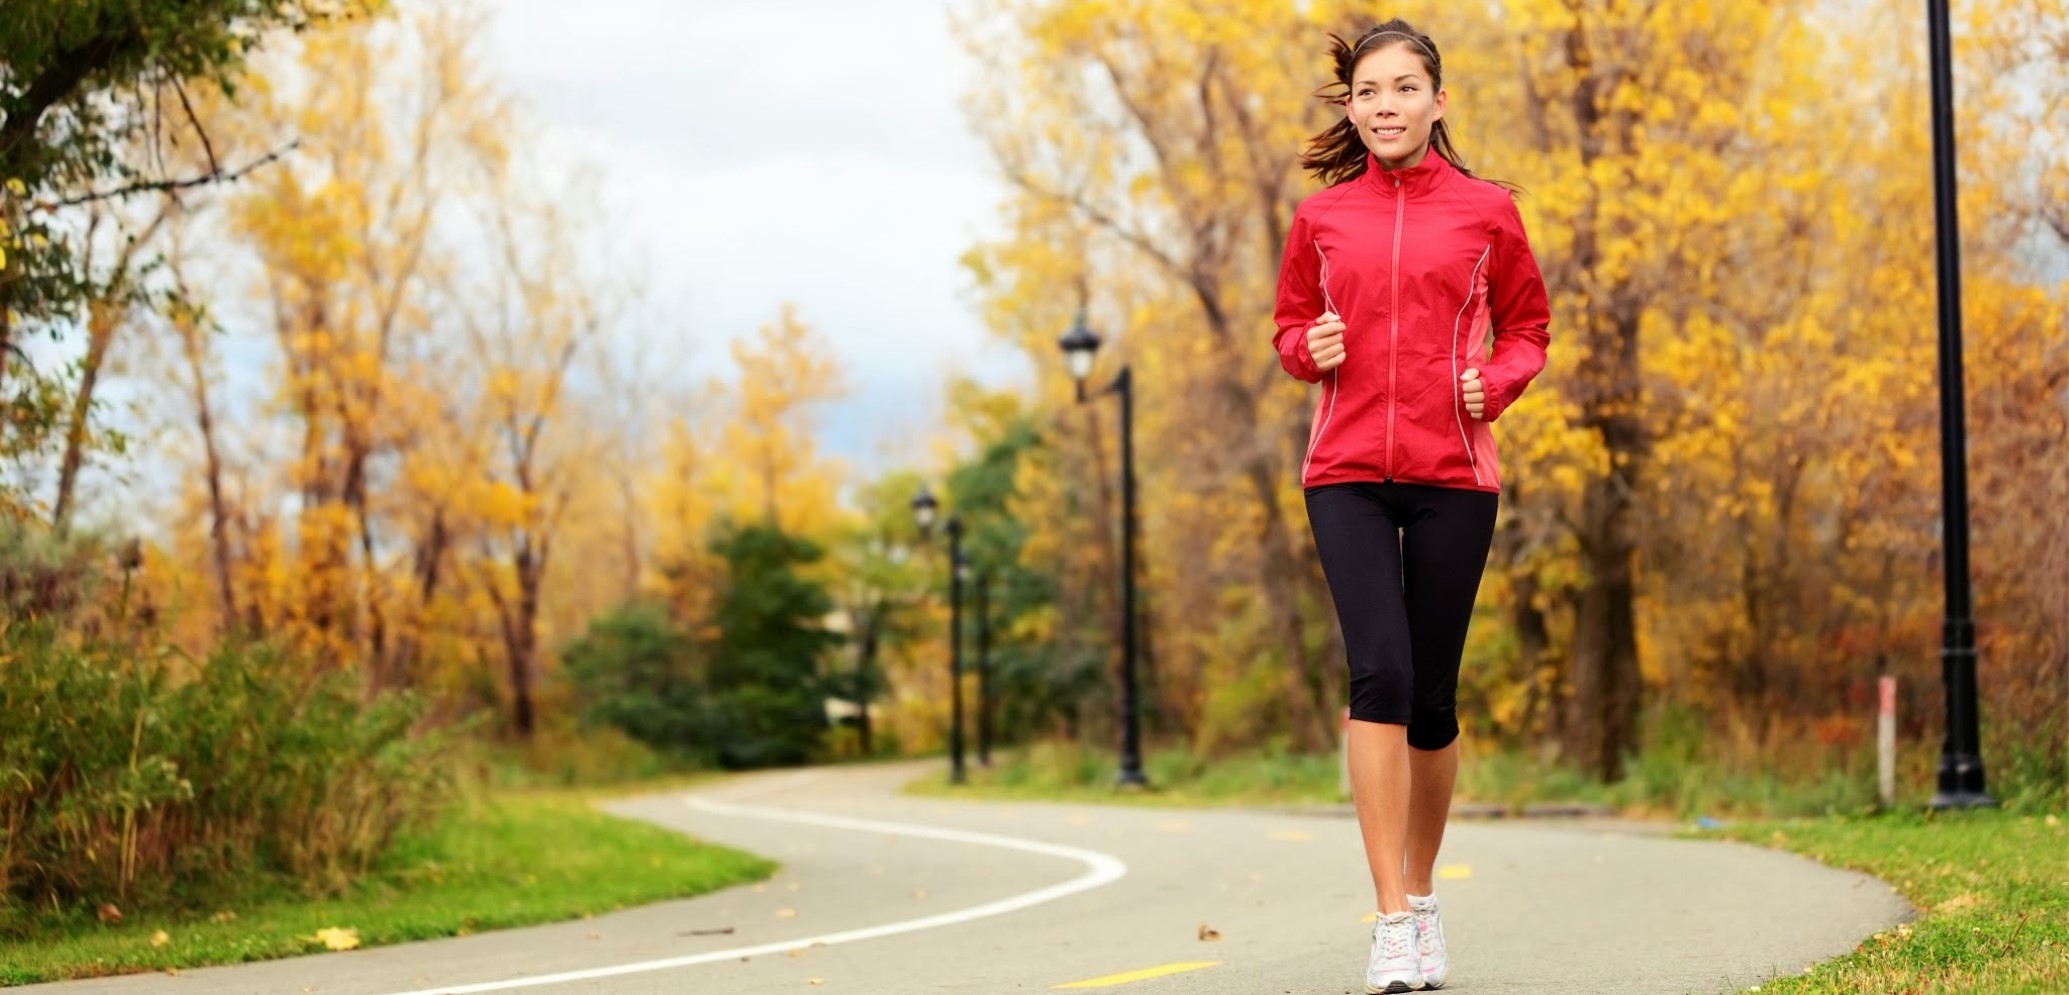 running-woman-houston-health